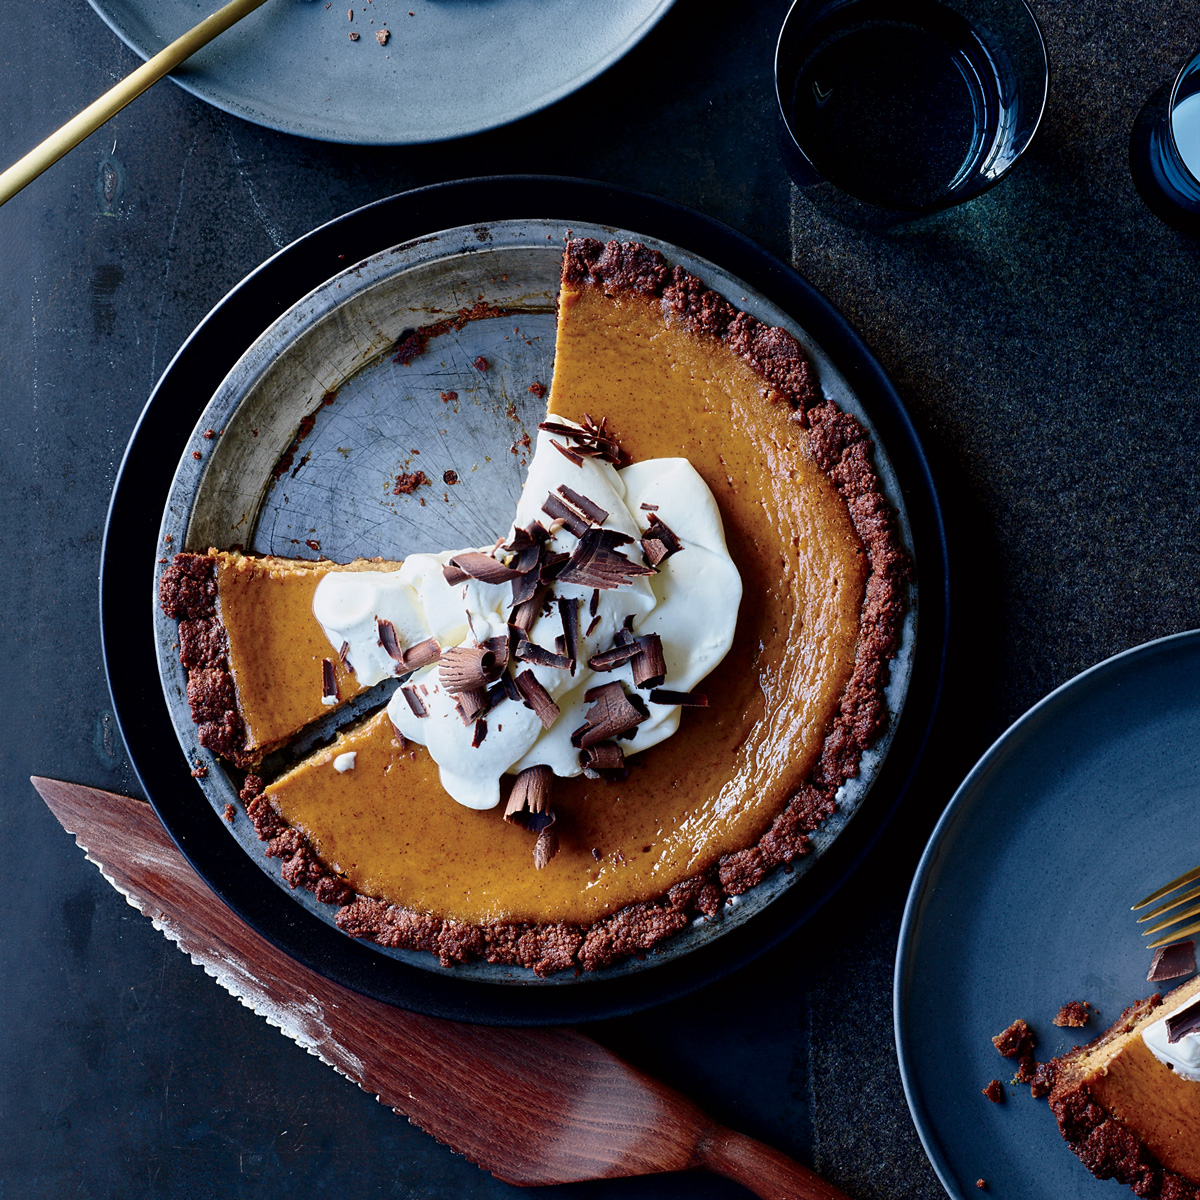 Pumpkin Cream Pie in a Chocolate Crust